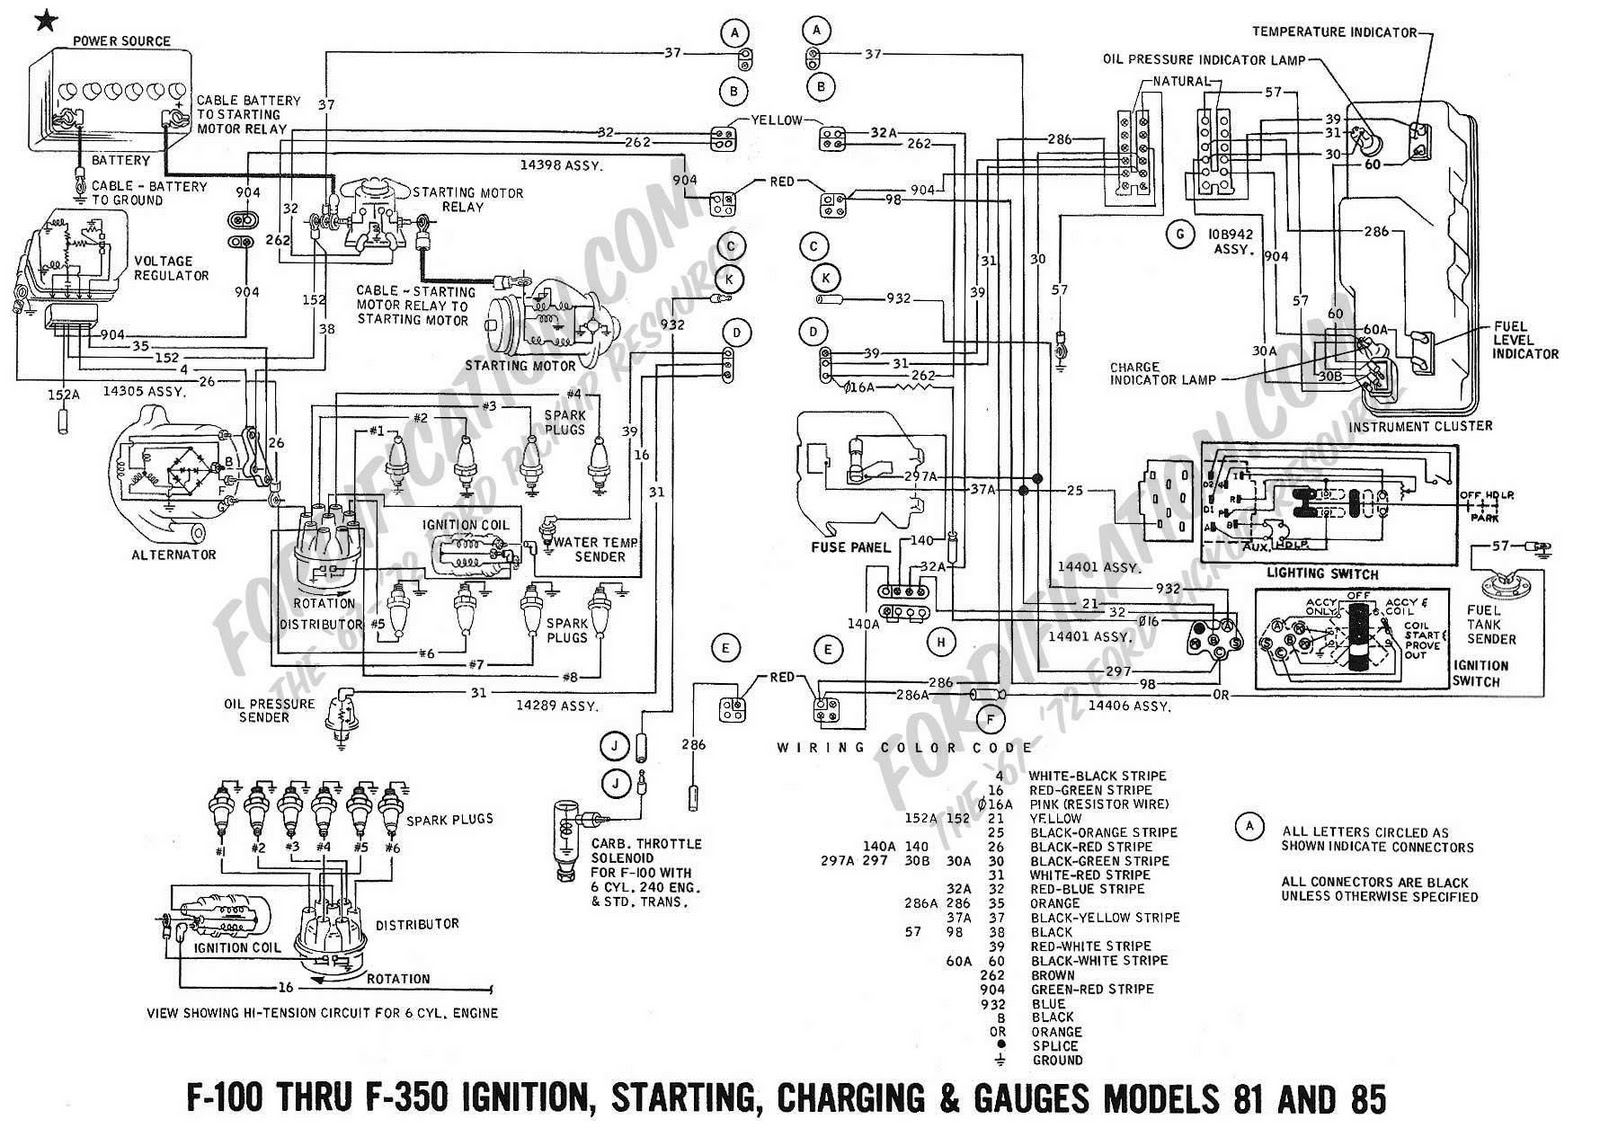 1970 ford f100 charging system wiring diagram books of wiring 1970 ford  falcon wiring diagrams 1969